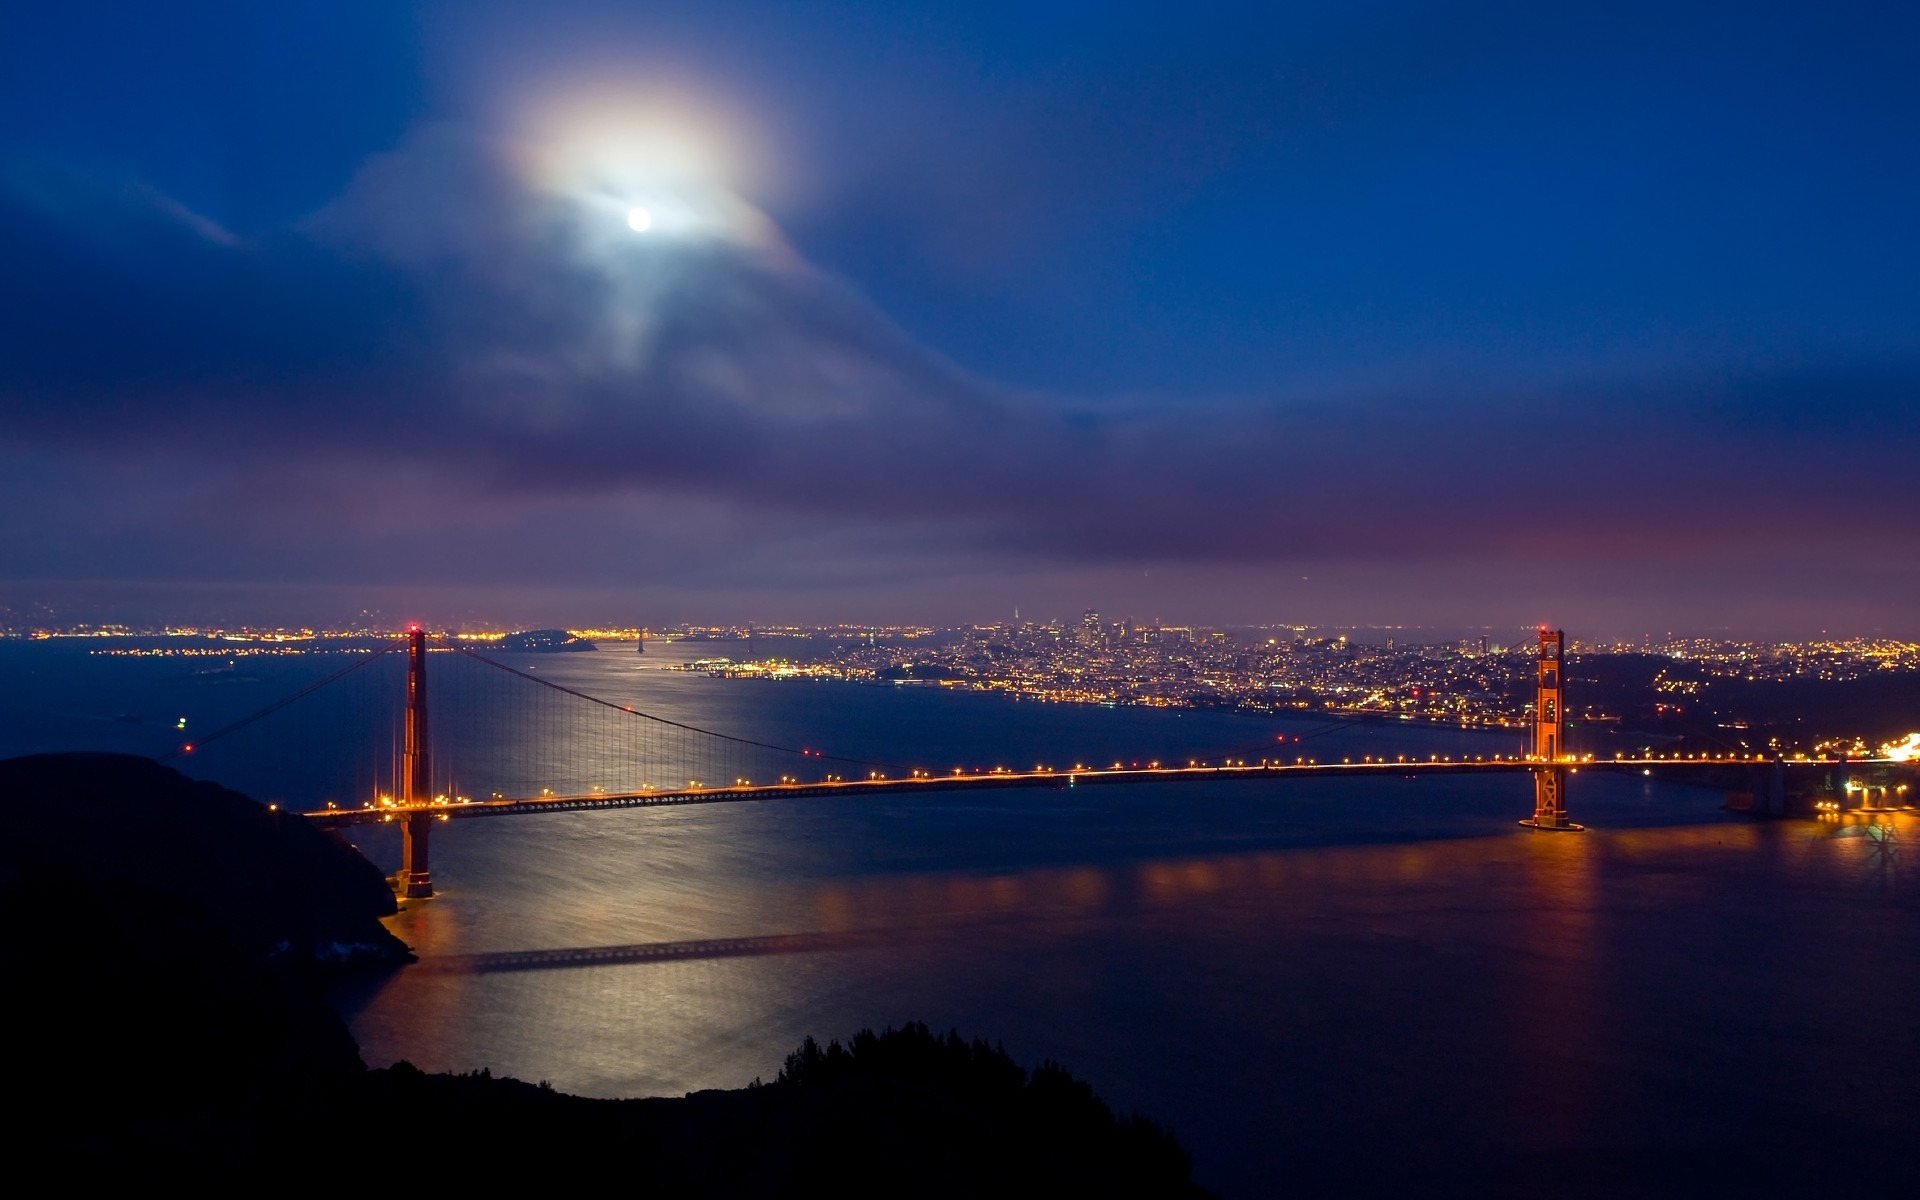 San Francisco Golden Gate Bridge City Night View Wallpaper 1920x1200